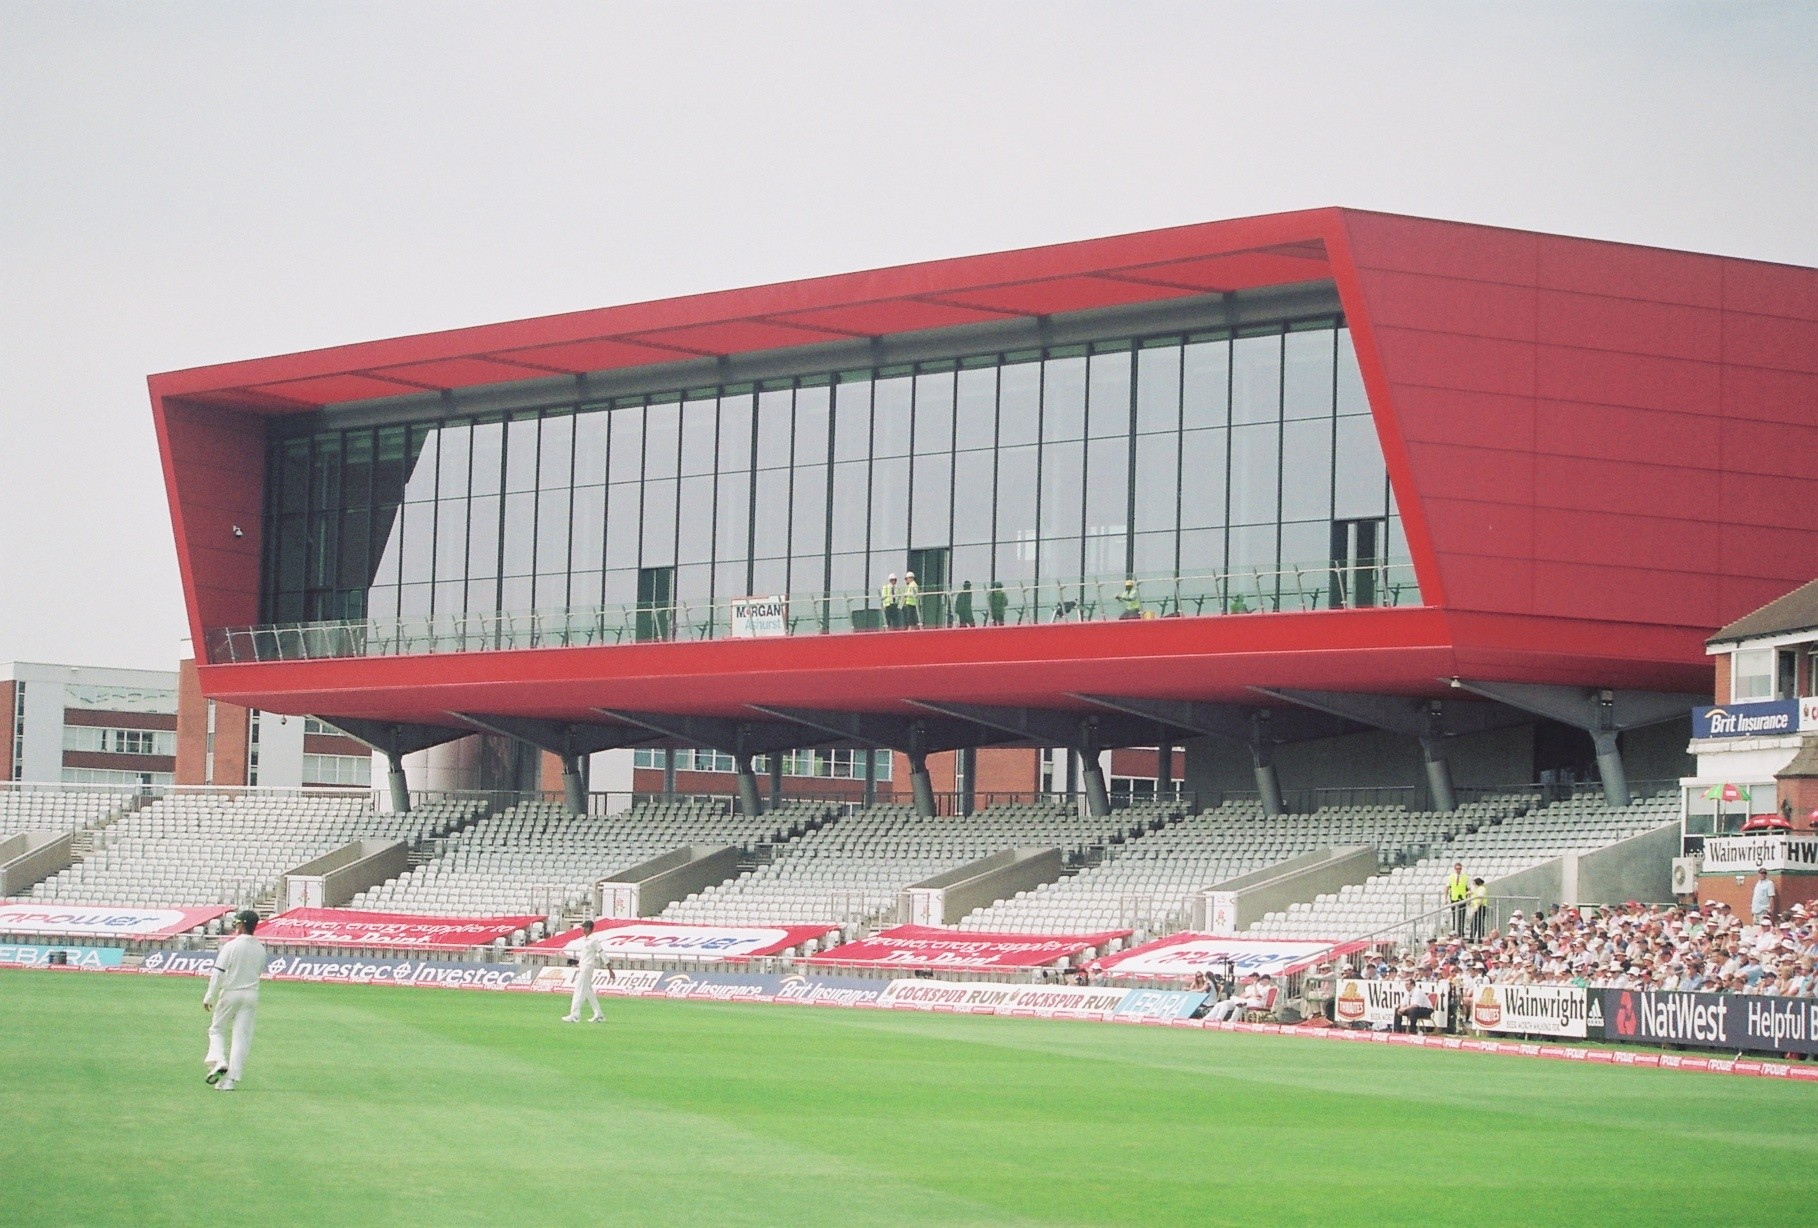 File:The Point Old Trafford 2010.jpg - Wikimedia Commons